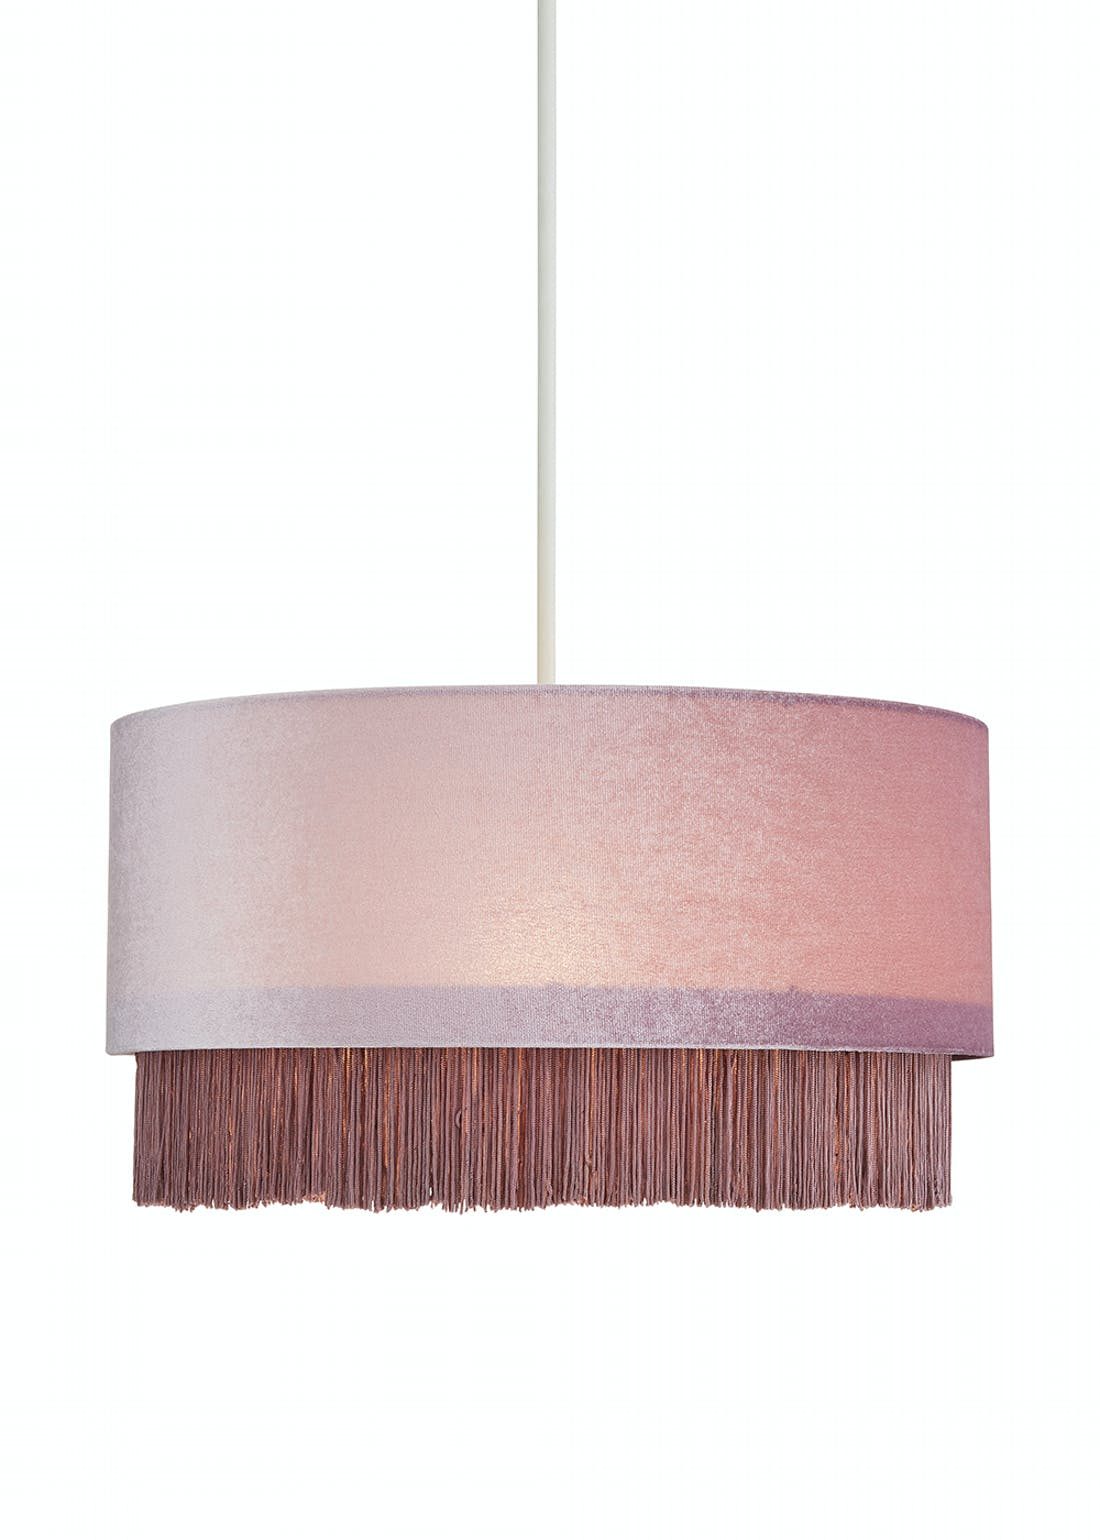 Fringed Easy Fit Lamp Shade (H19cm x W38cm)